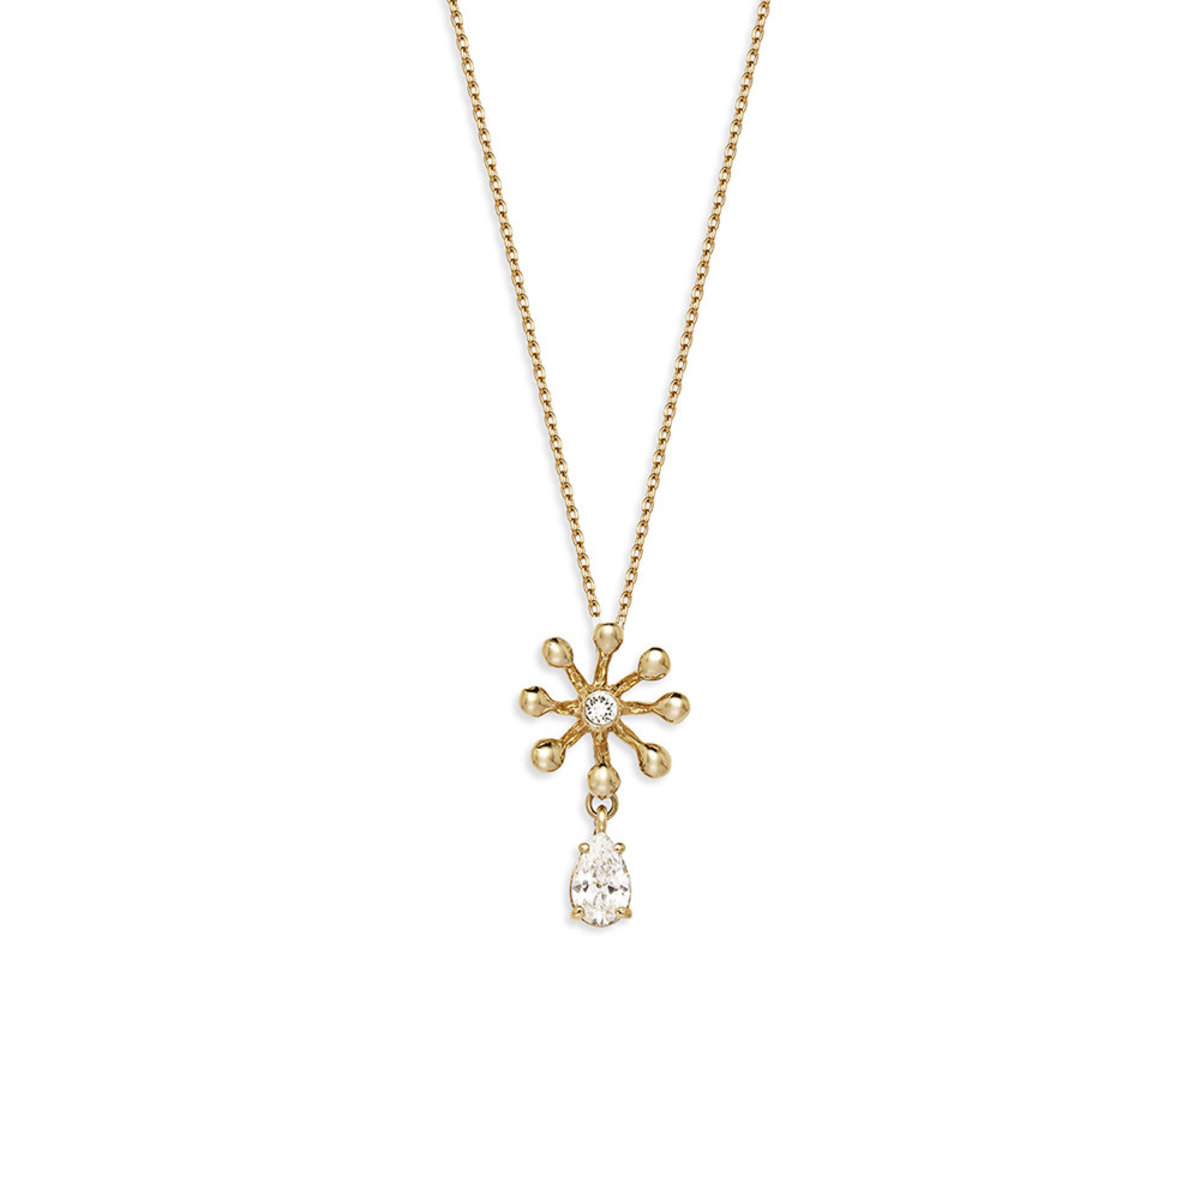 Brillia: gold plating, Swarovski crystal, CZ stone necklace